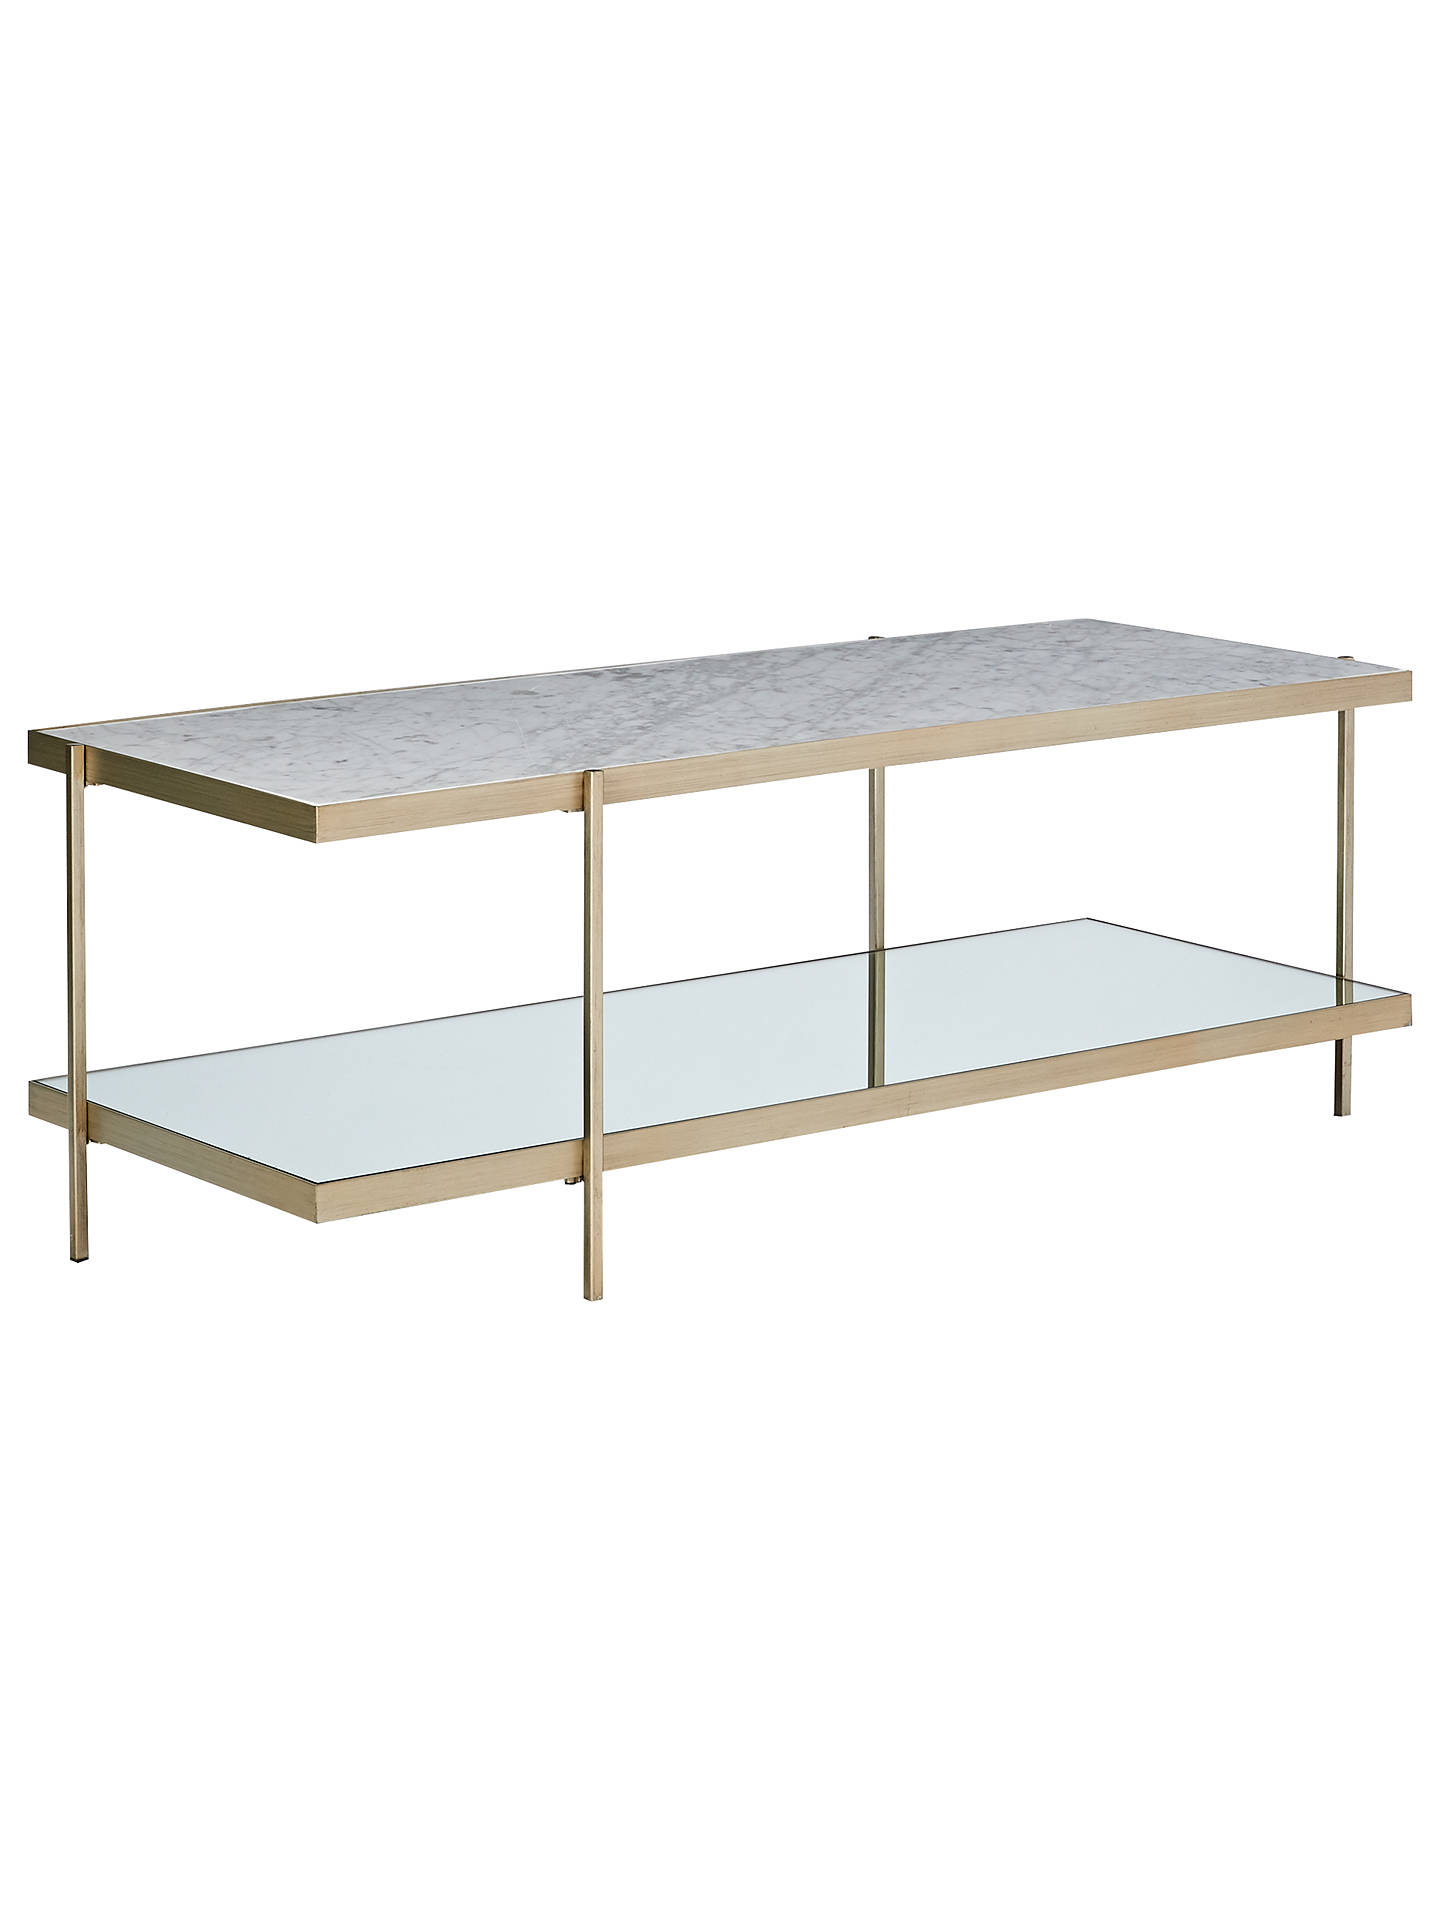 West Elm Avery Coffee Table At John Lewis Partners - West elm avery coffee table